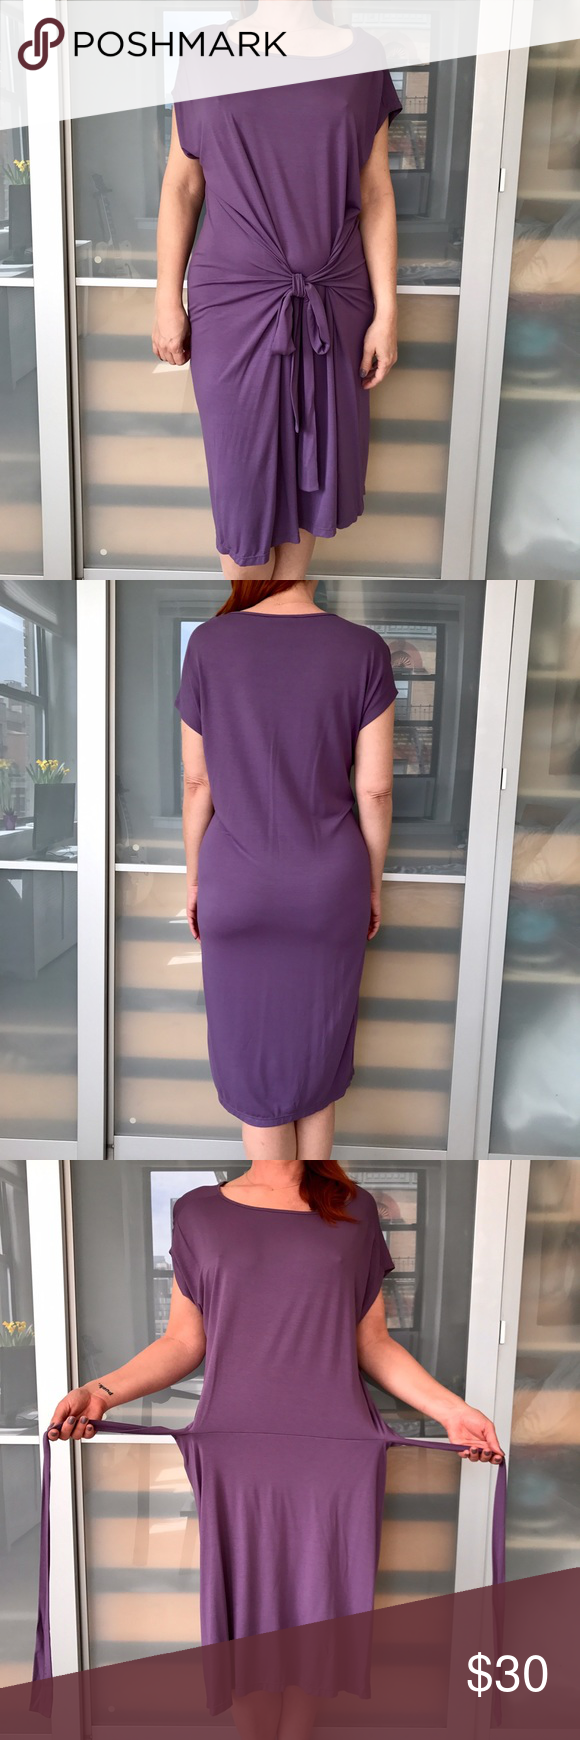 Lenny Niemeyer purple jersey dress Lenny Niemeyer purple jersey dress.  Cap sleeve, round neck, self tie belt.  Easy summer dress, rayon jersey.  Great condition. Lenny Niemeyer Dresses Midi